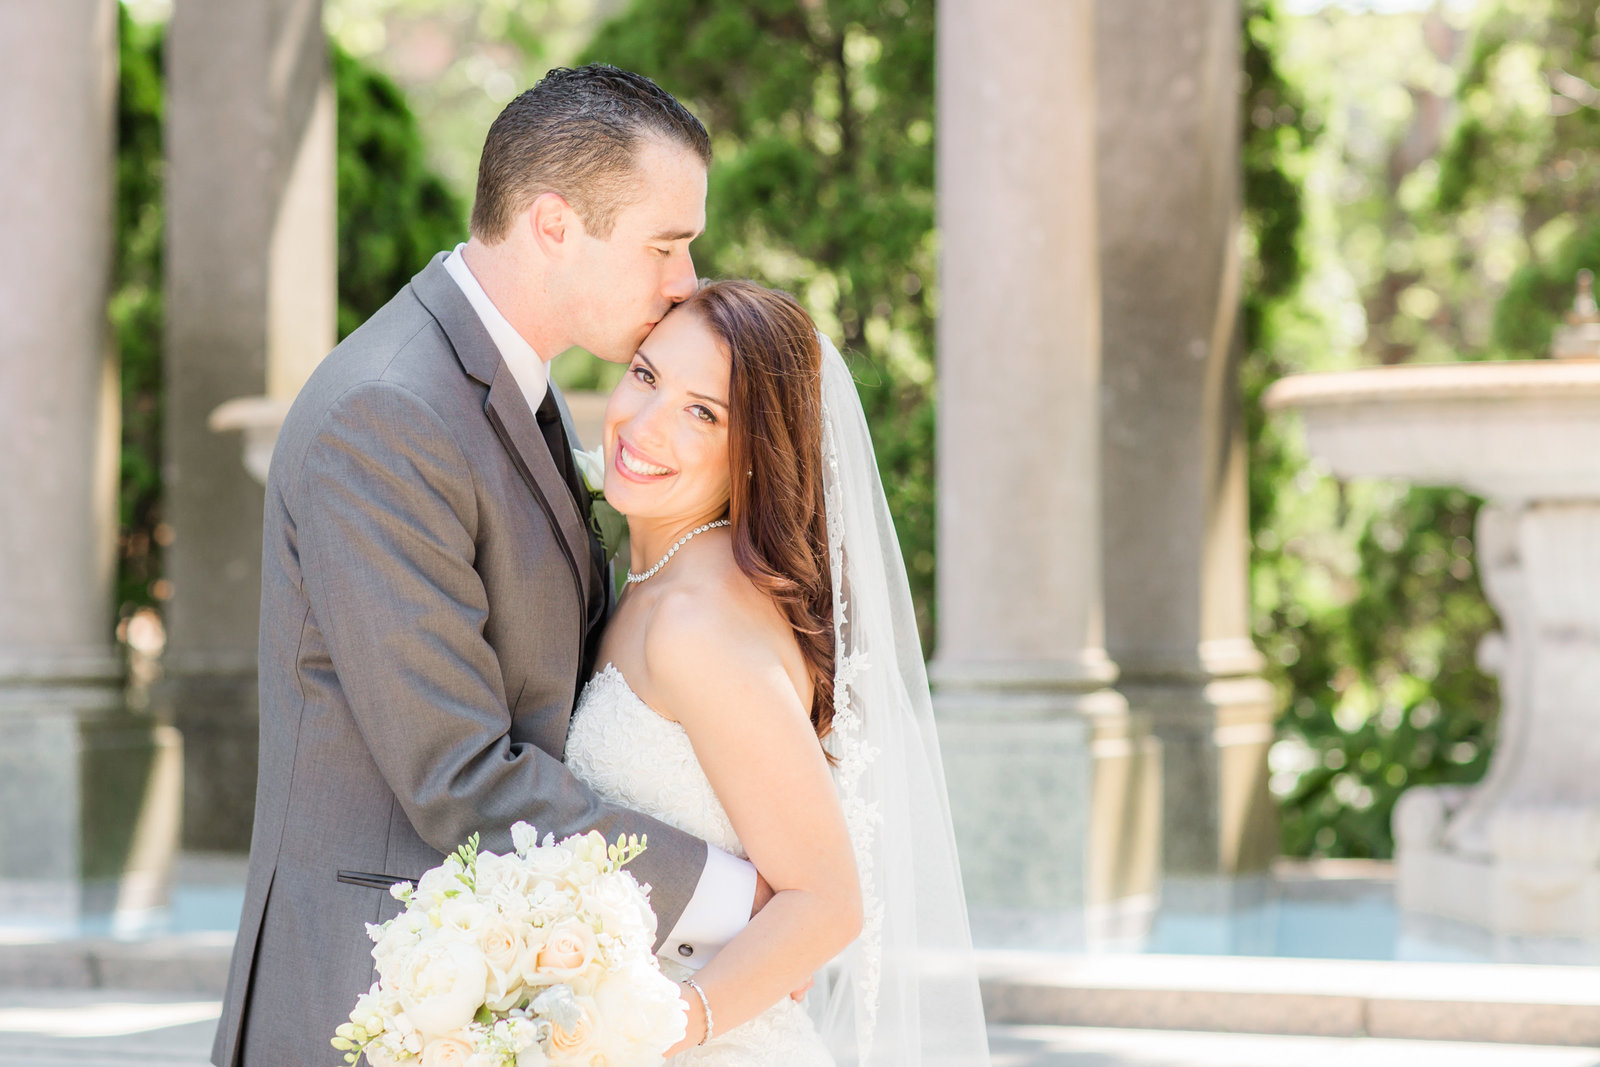 Bride and groom portrait at Monmouth University